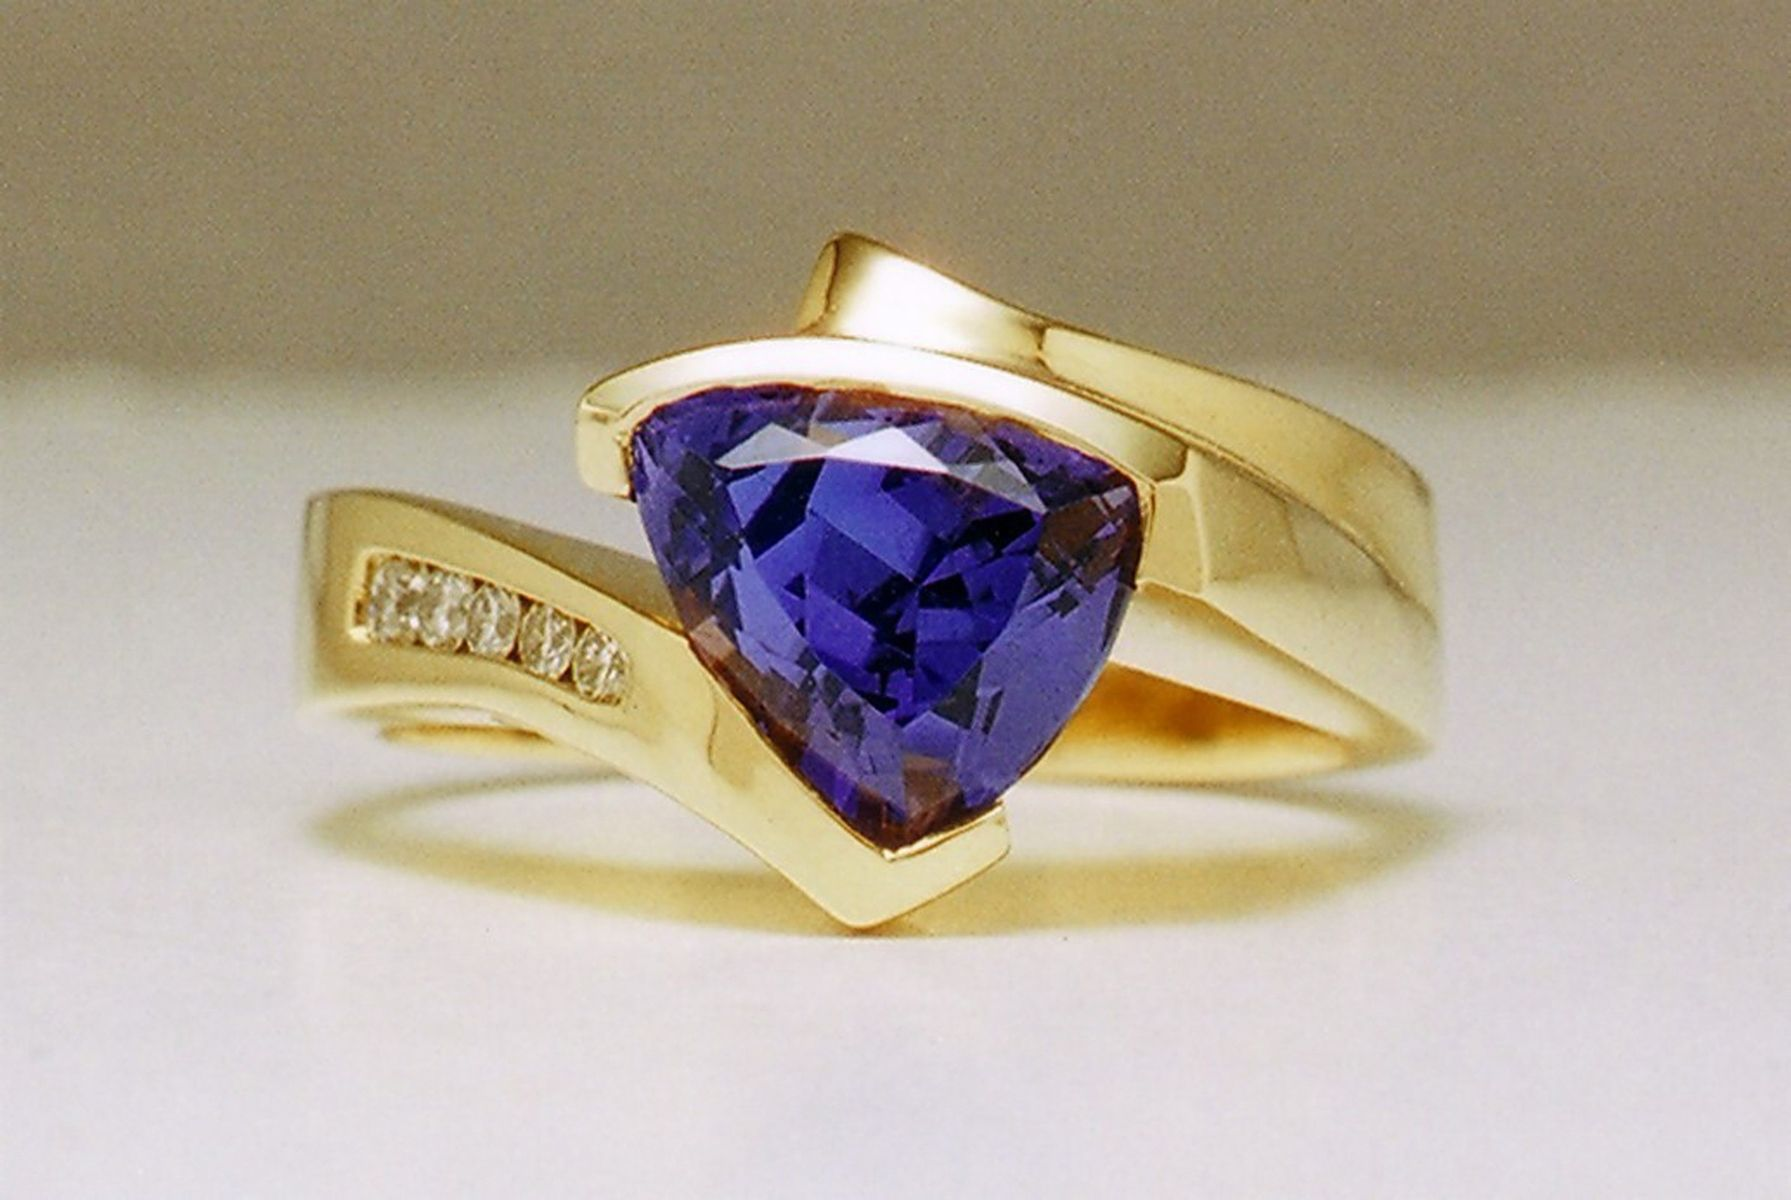 rings wedding tanzanite beautiful and gemstone elegant three luxury engagement idea of bee ring bands blue stone set diamond